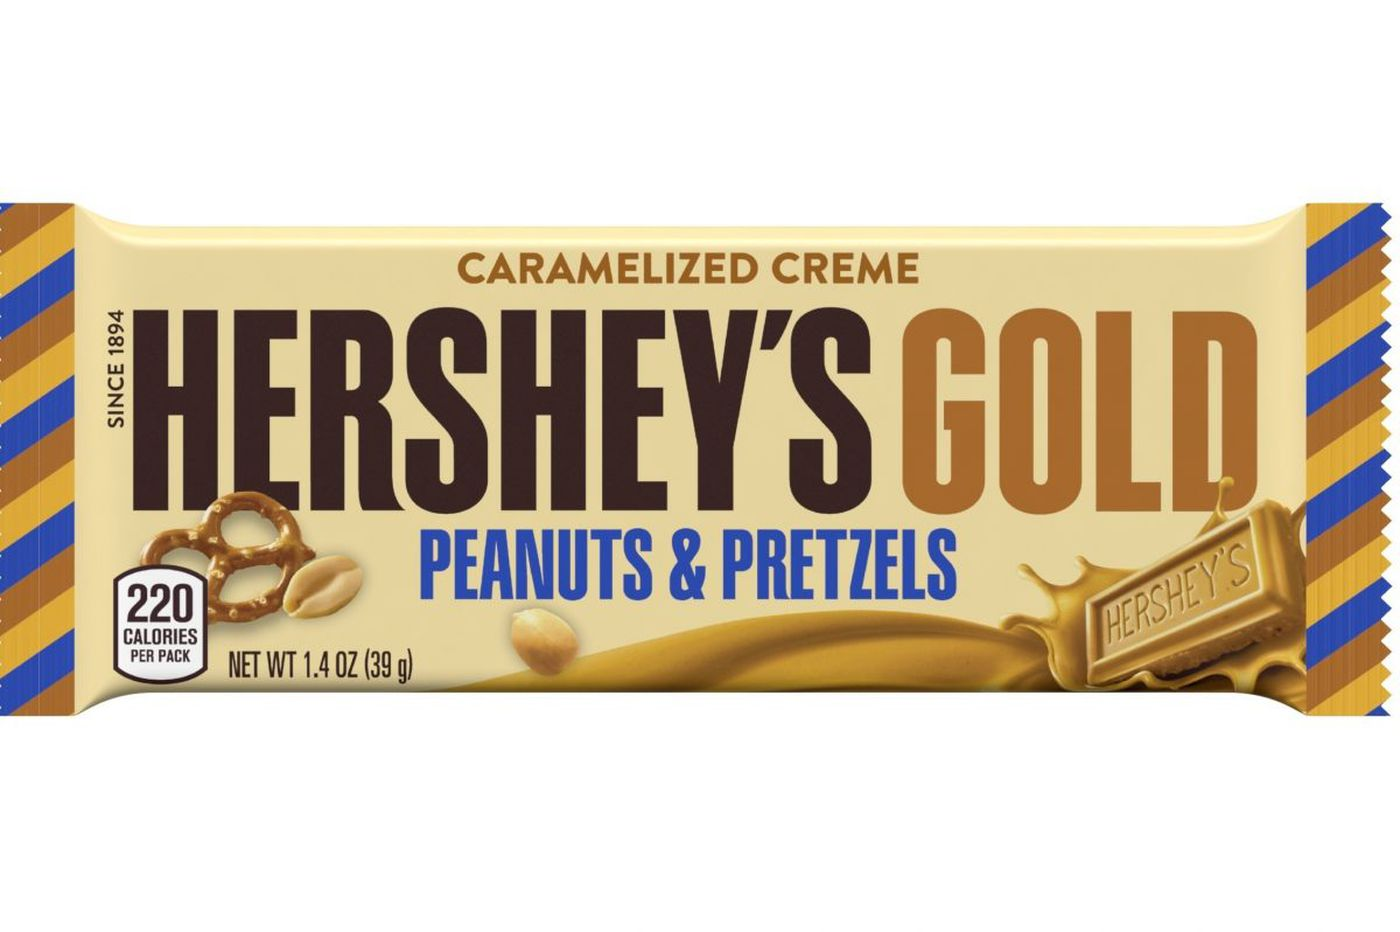 Hershey launches first new bar flavor since 1995